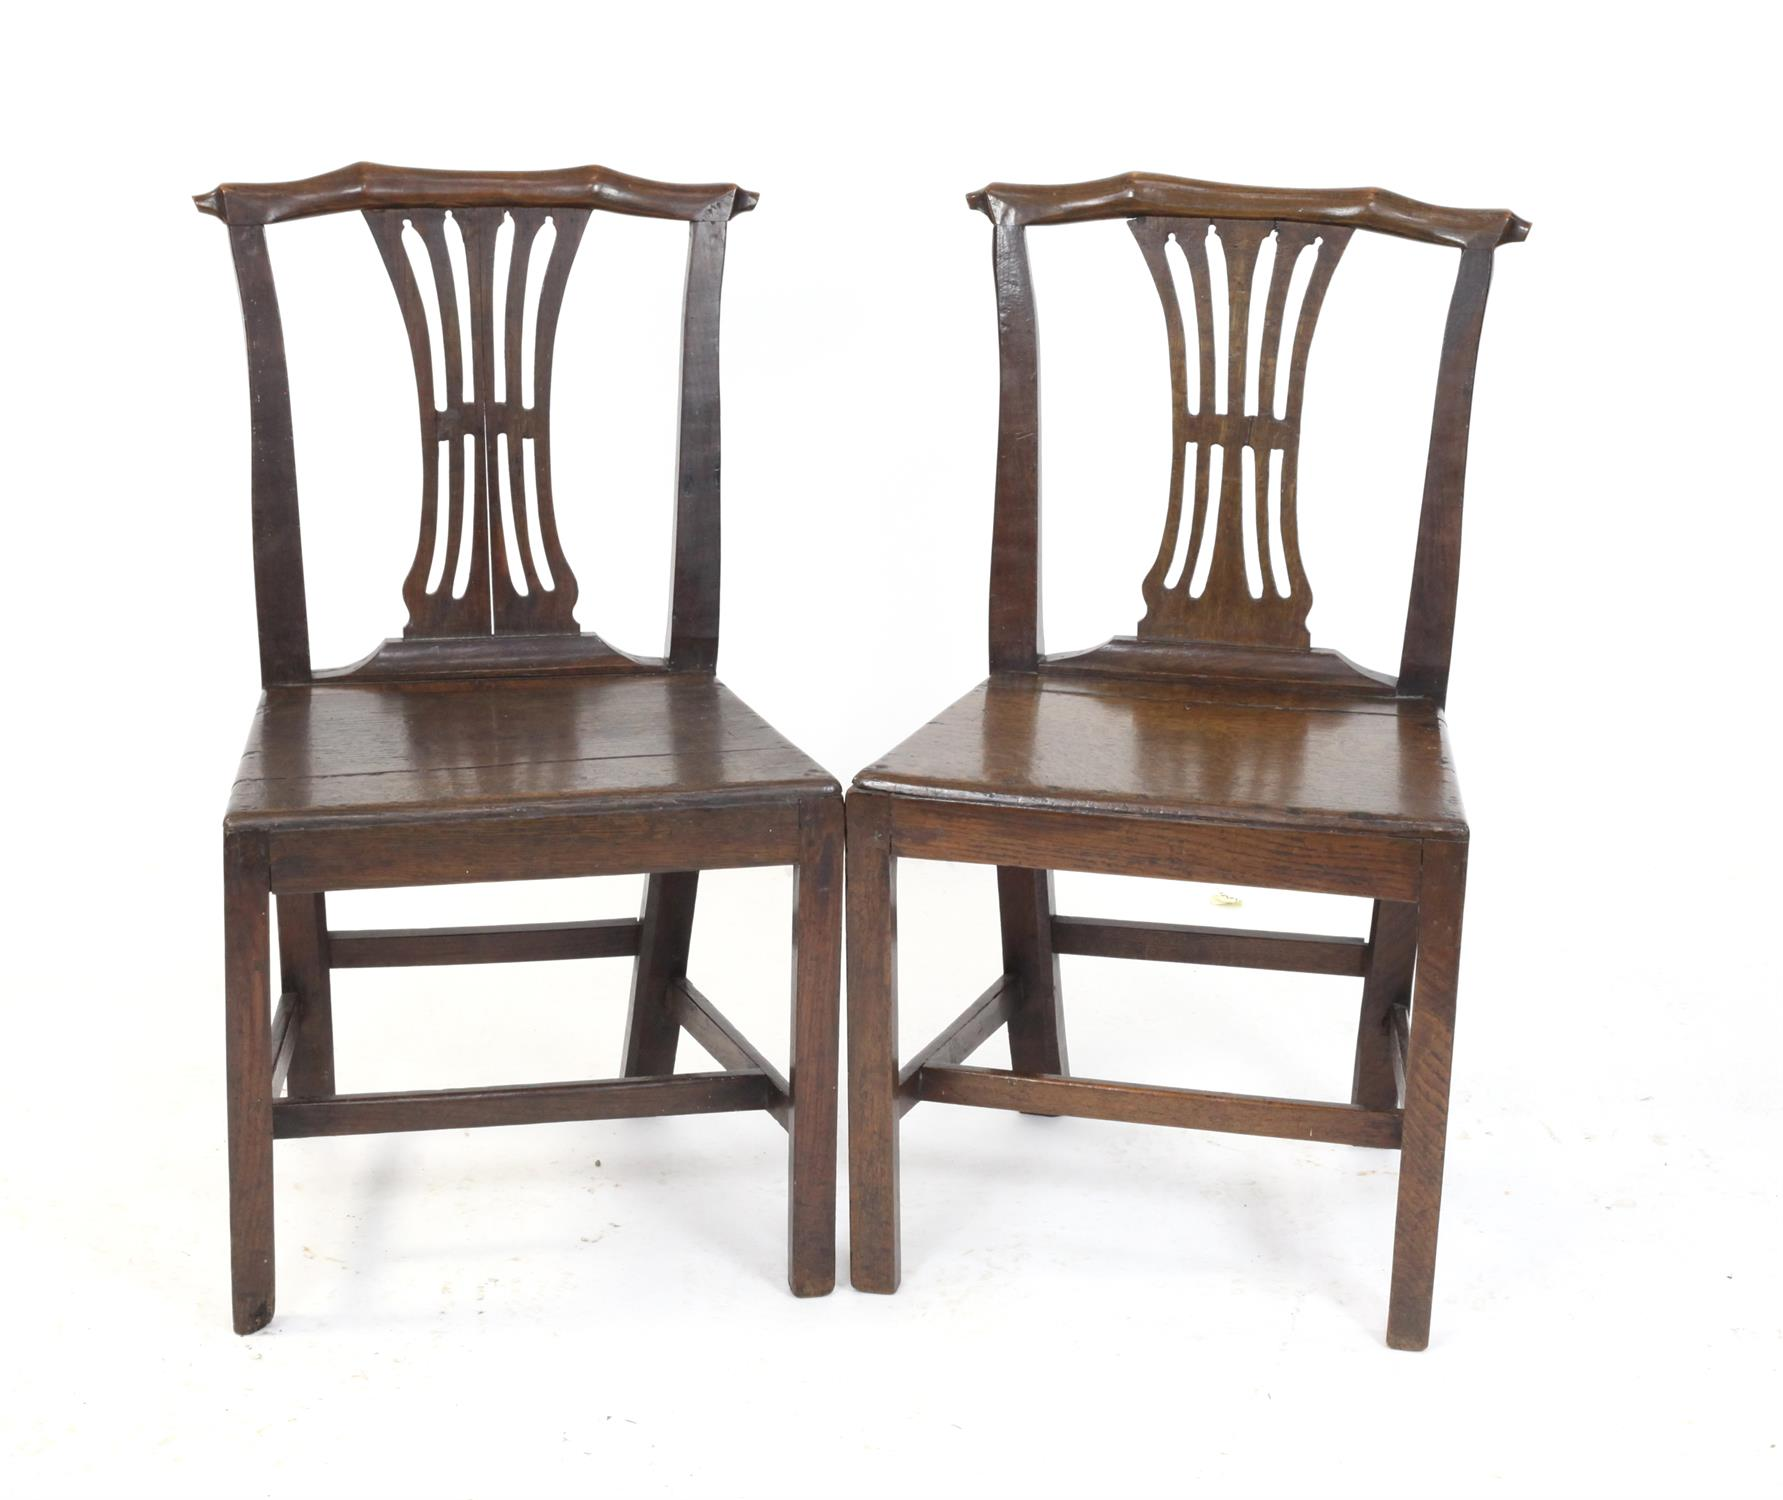 Pair of early 19th century oak country made dining chairs with carved splat backs on square